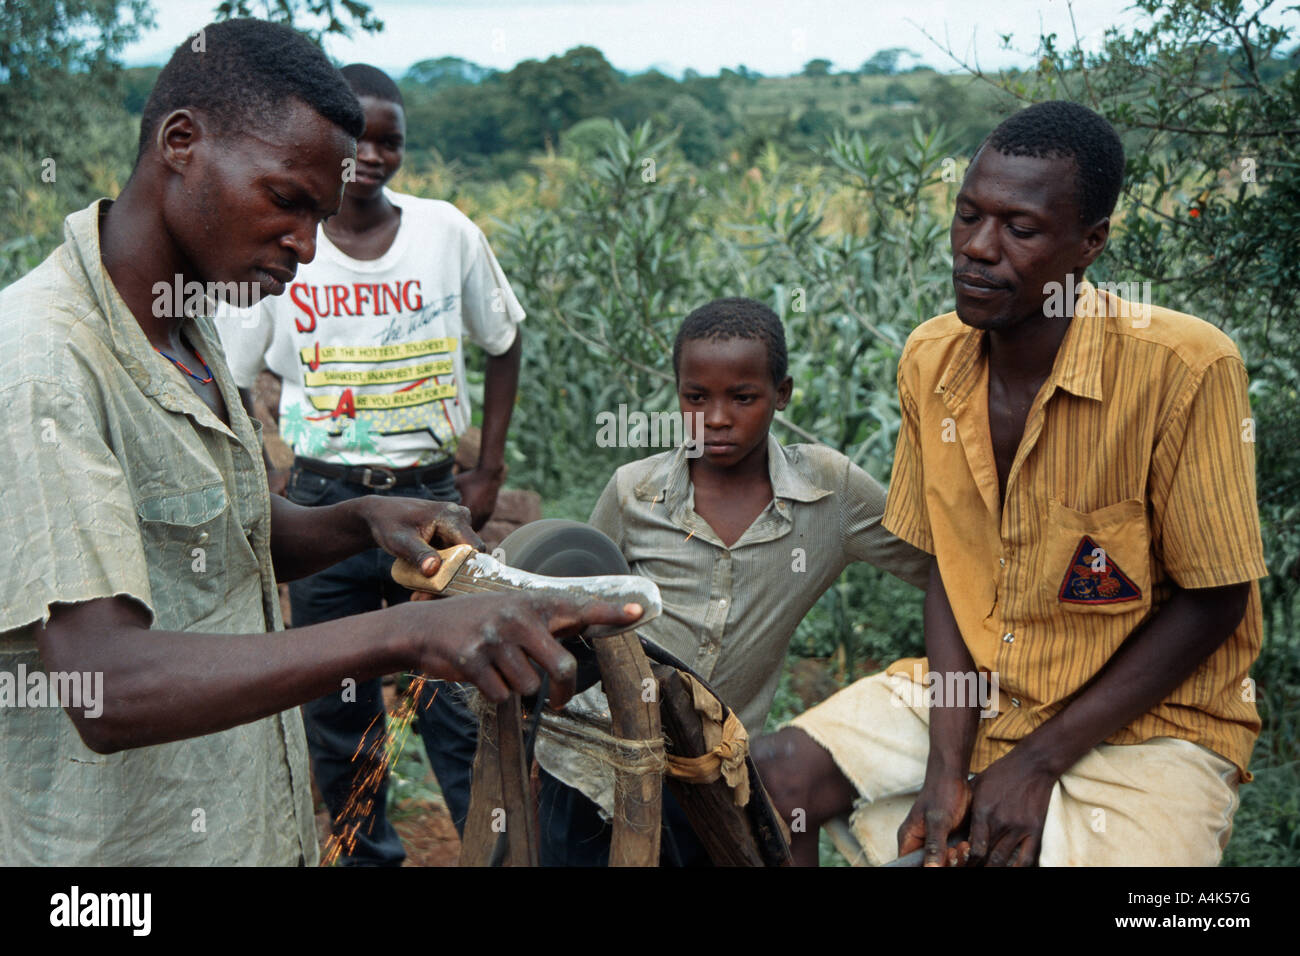 Knife grinder using a converted bicycle to power a grind stone, Himo, Tanzania - Stock Image